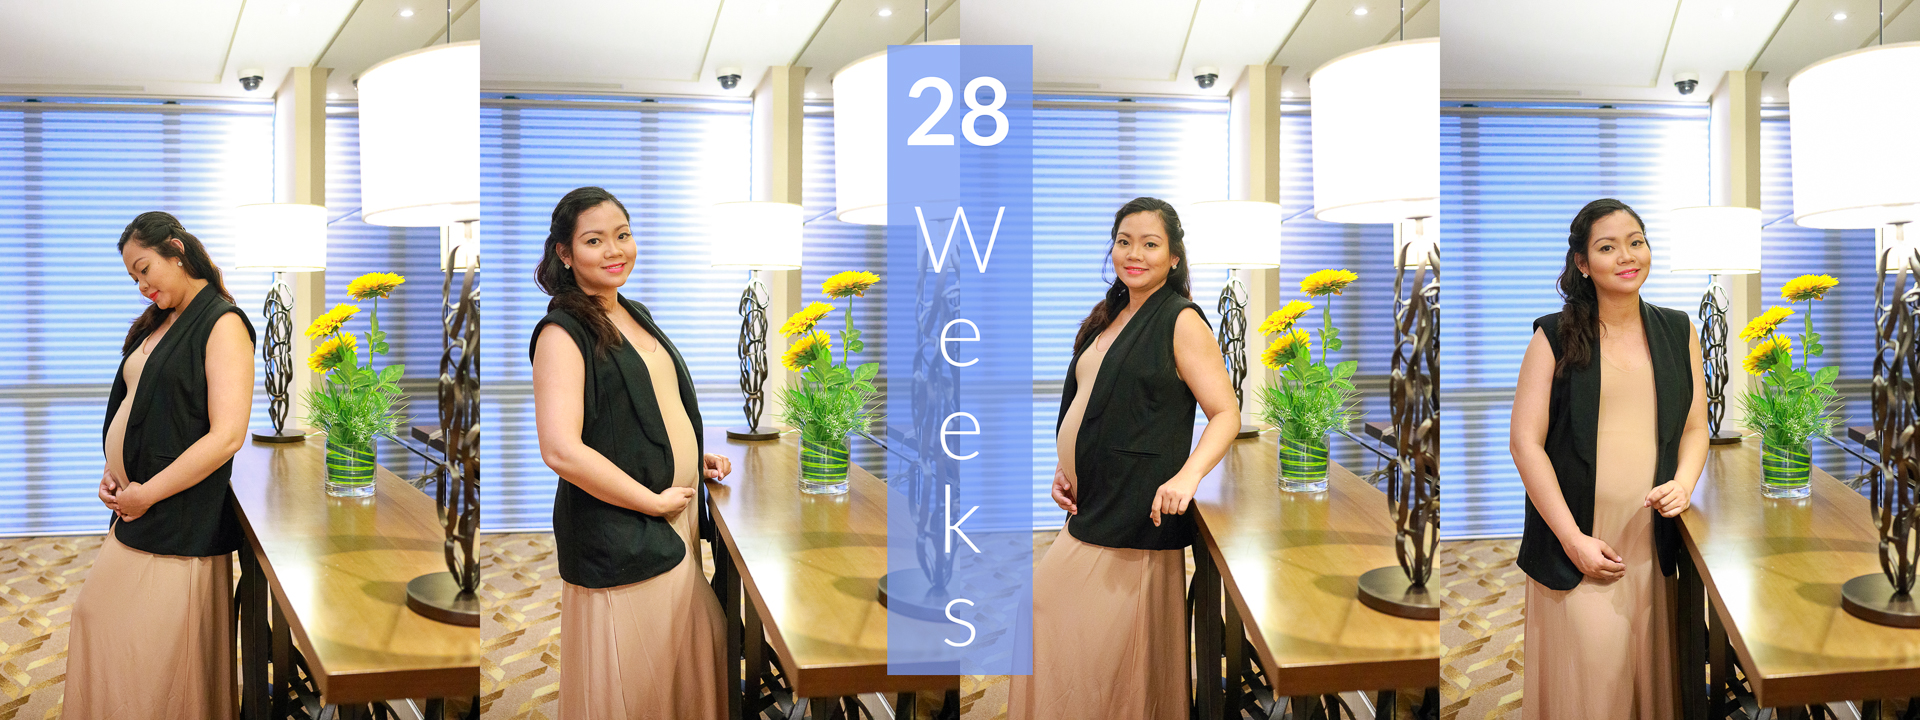 Pregnancy Diary: 28 Weeks and 3 Days (September 19)